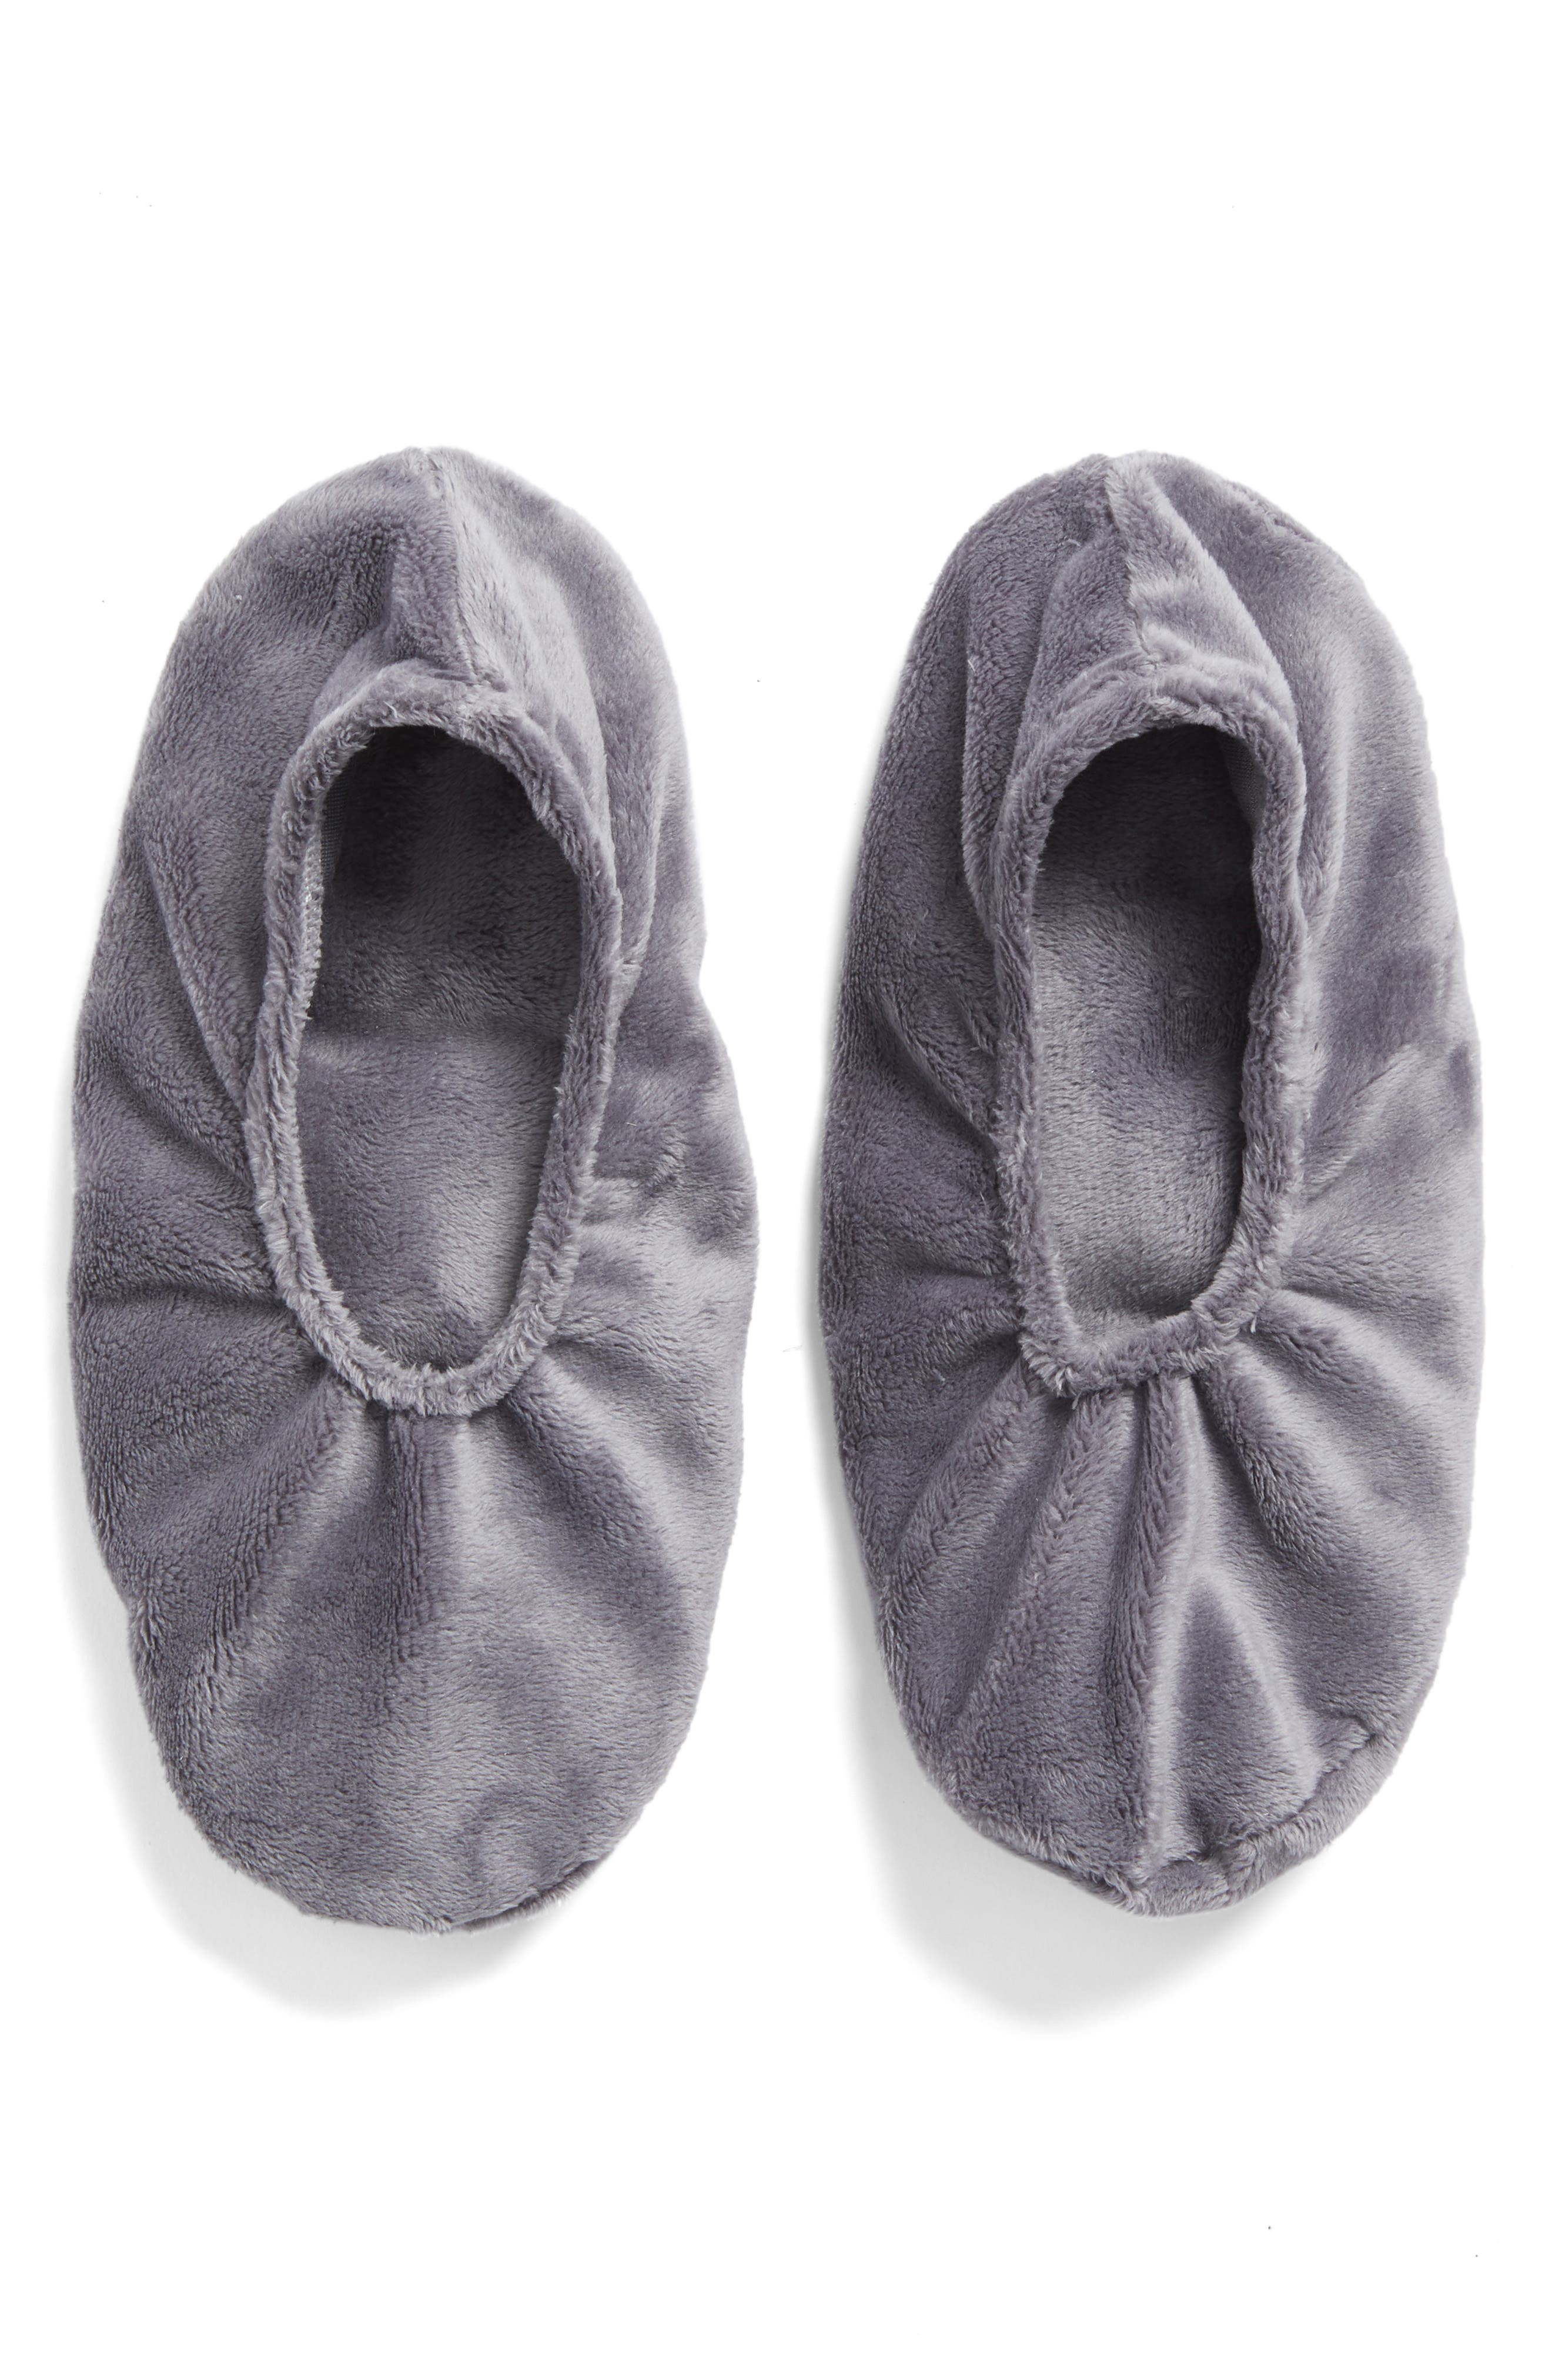 Main Image - Sonoma Lavender Solid Charcoal Grey Footies (Nordstrom Exclusive) ($38 Value)